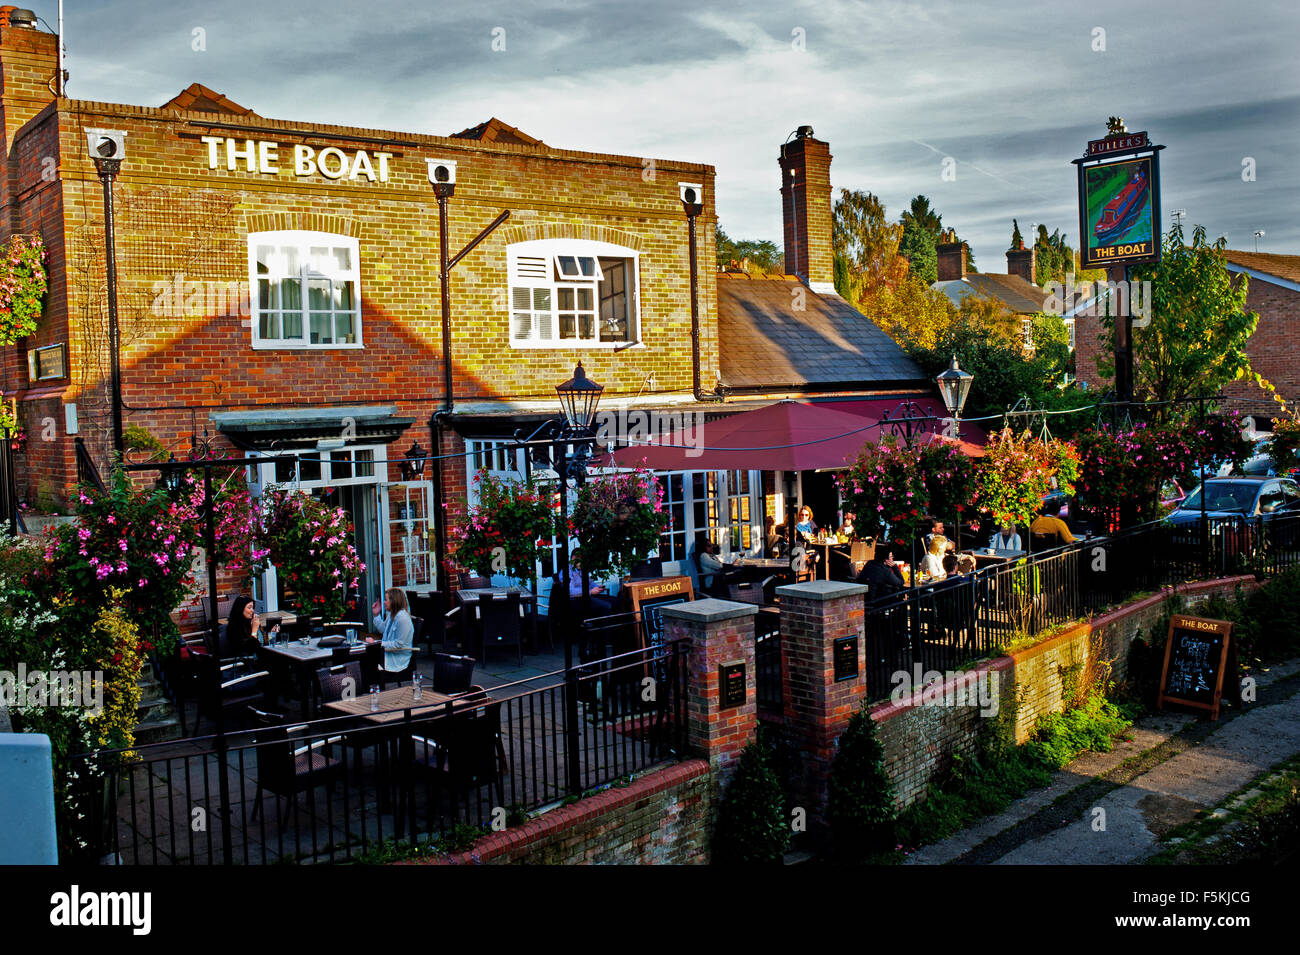 The Boat, Berkhamsted - Stock Image